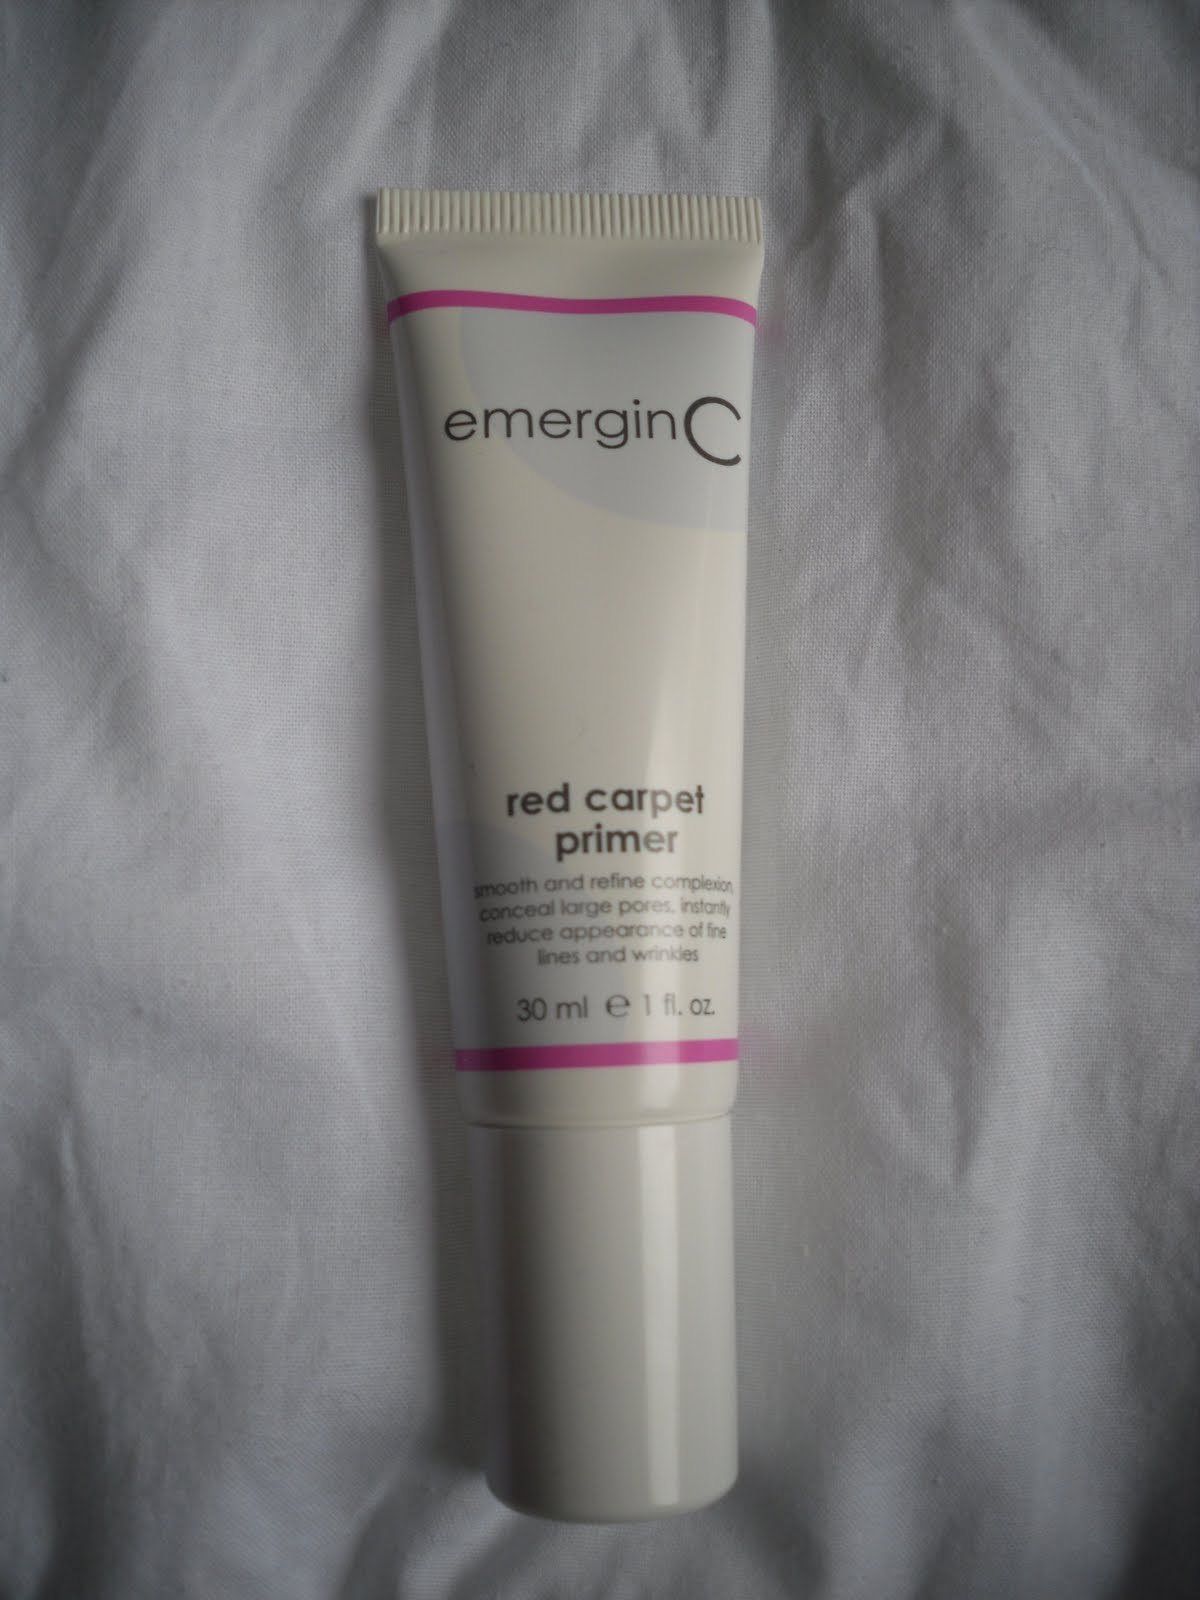 Emerginc Says Advanced Plant Based Hydrating And Plumping Micro Spheres Fill In Wrinkles And Fine Lines And Conceal Pores Leaving A Noticeably Smooth